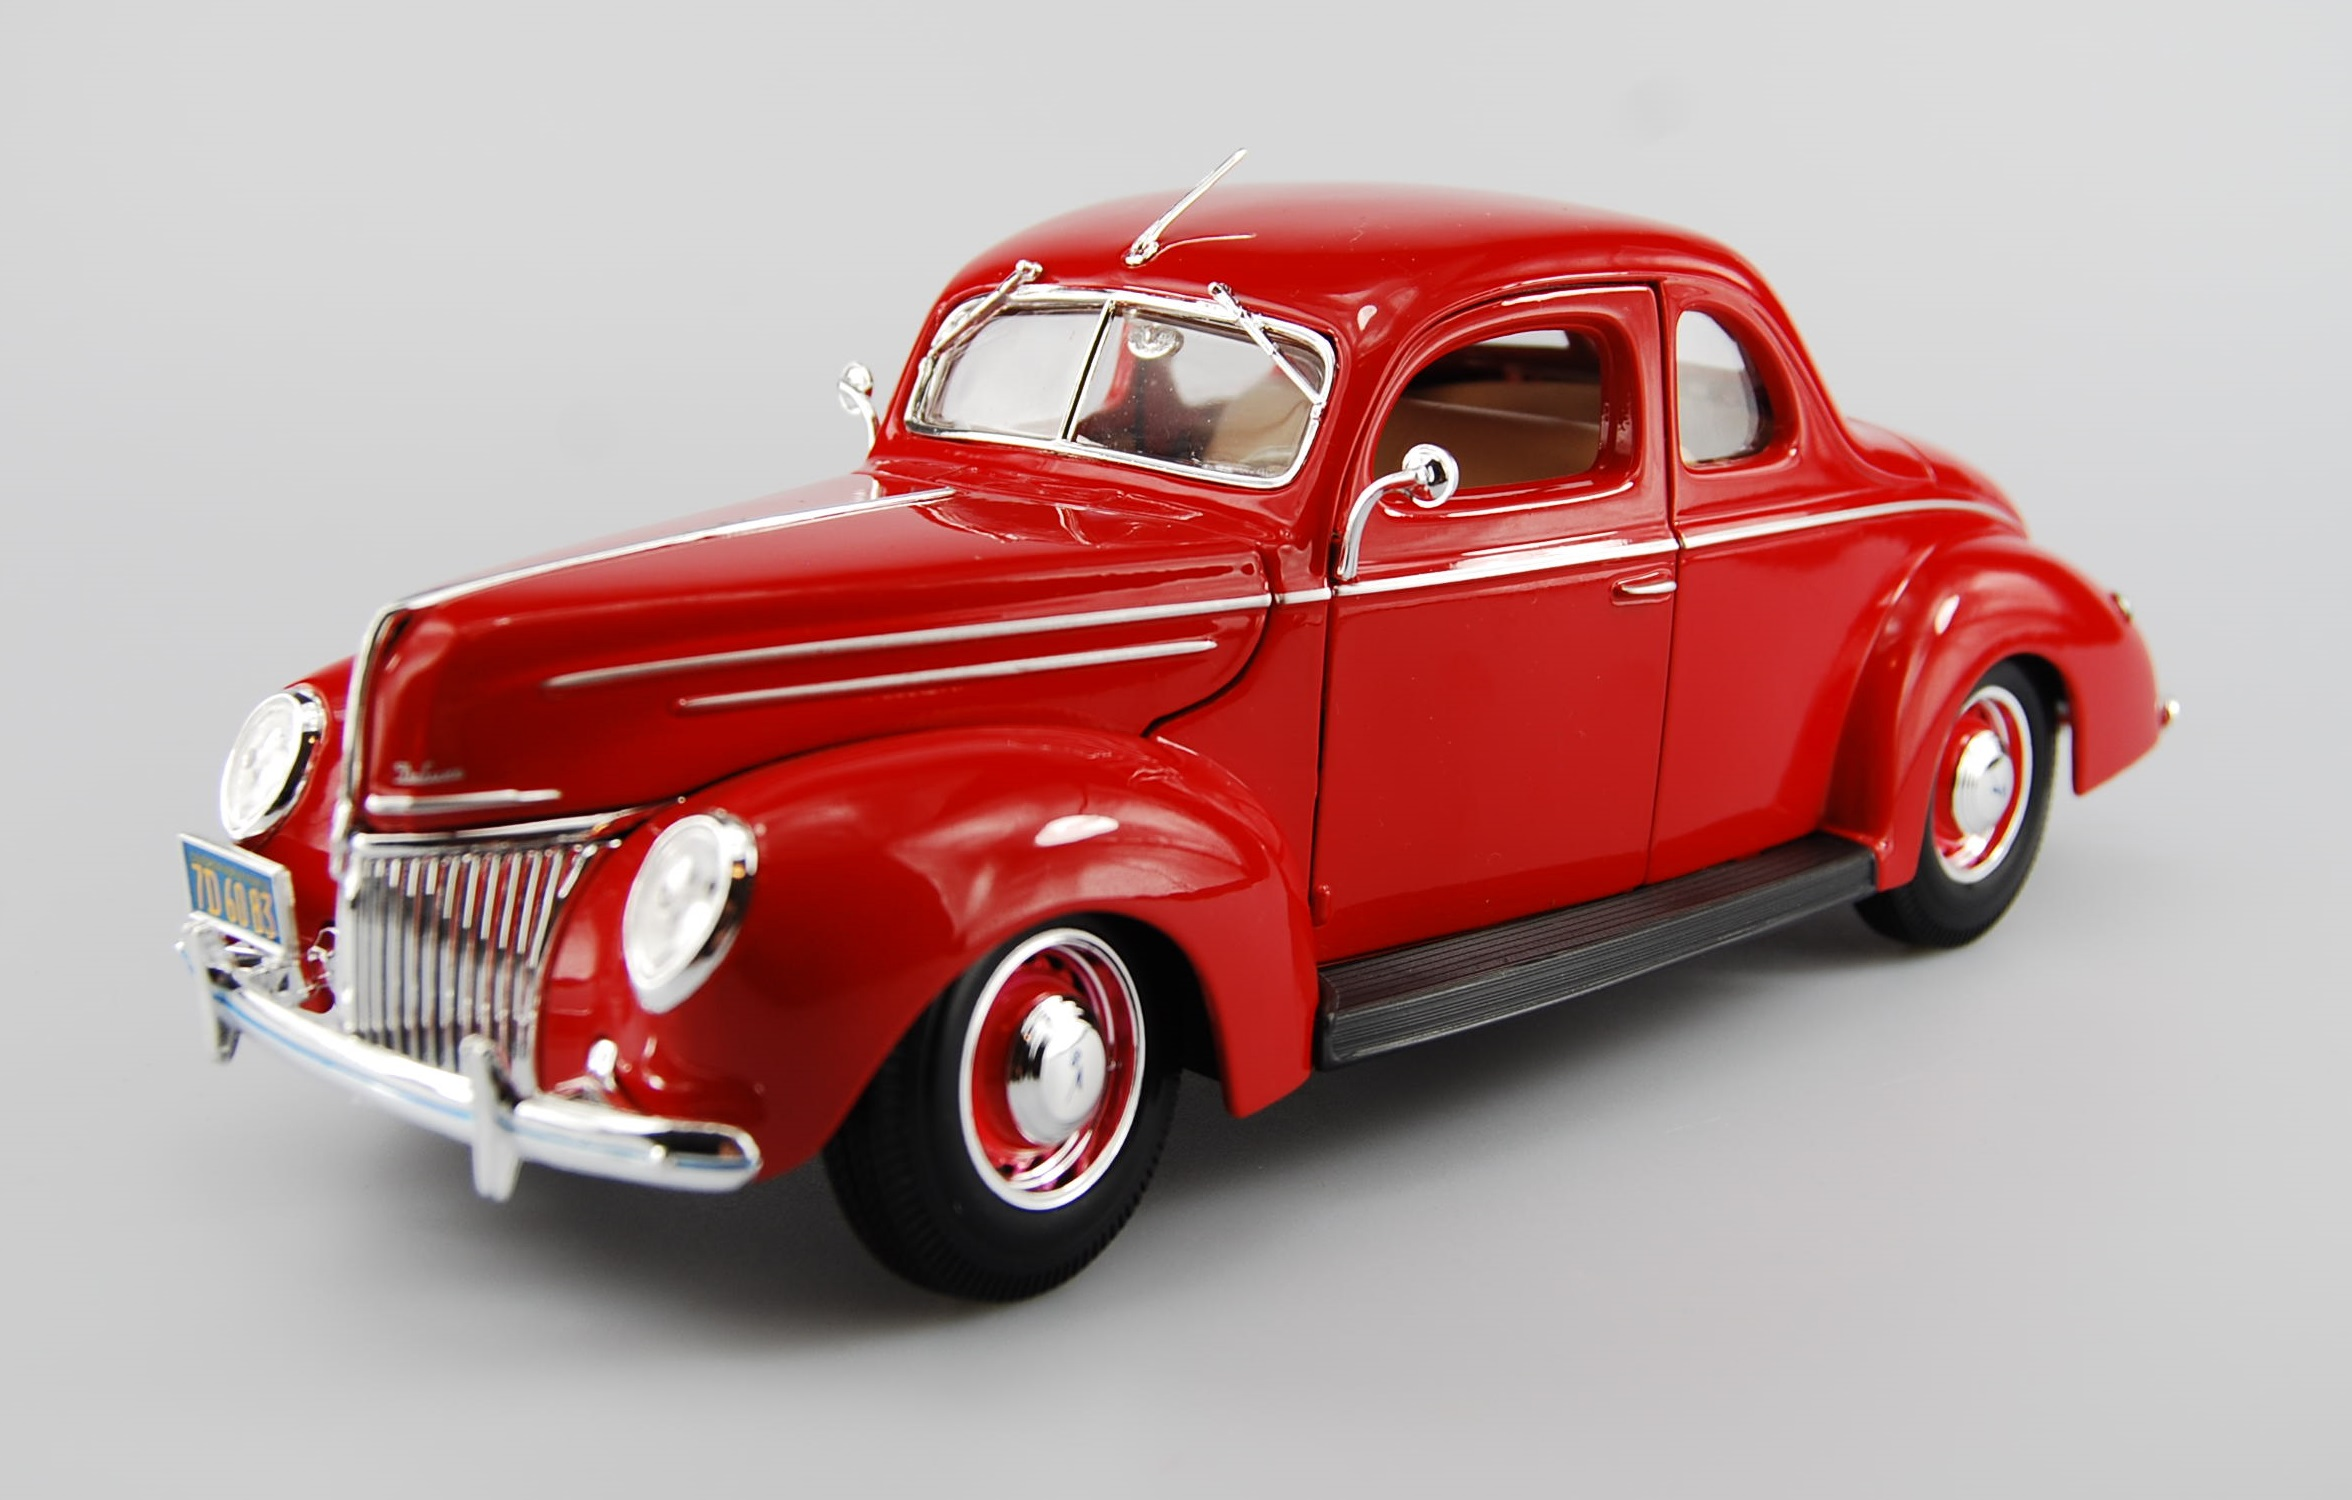 MAISTO 1939 FORD DELUXE RED SPECIAL EDITION 1 18 DIE CAST METAL 24cm